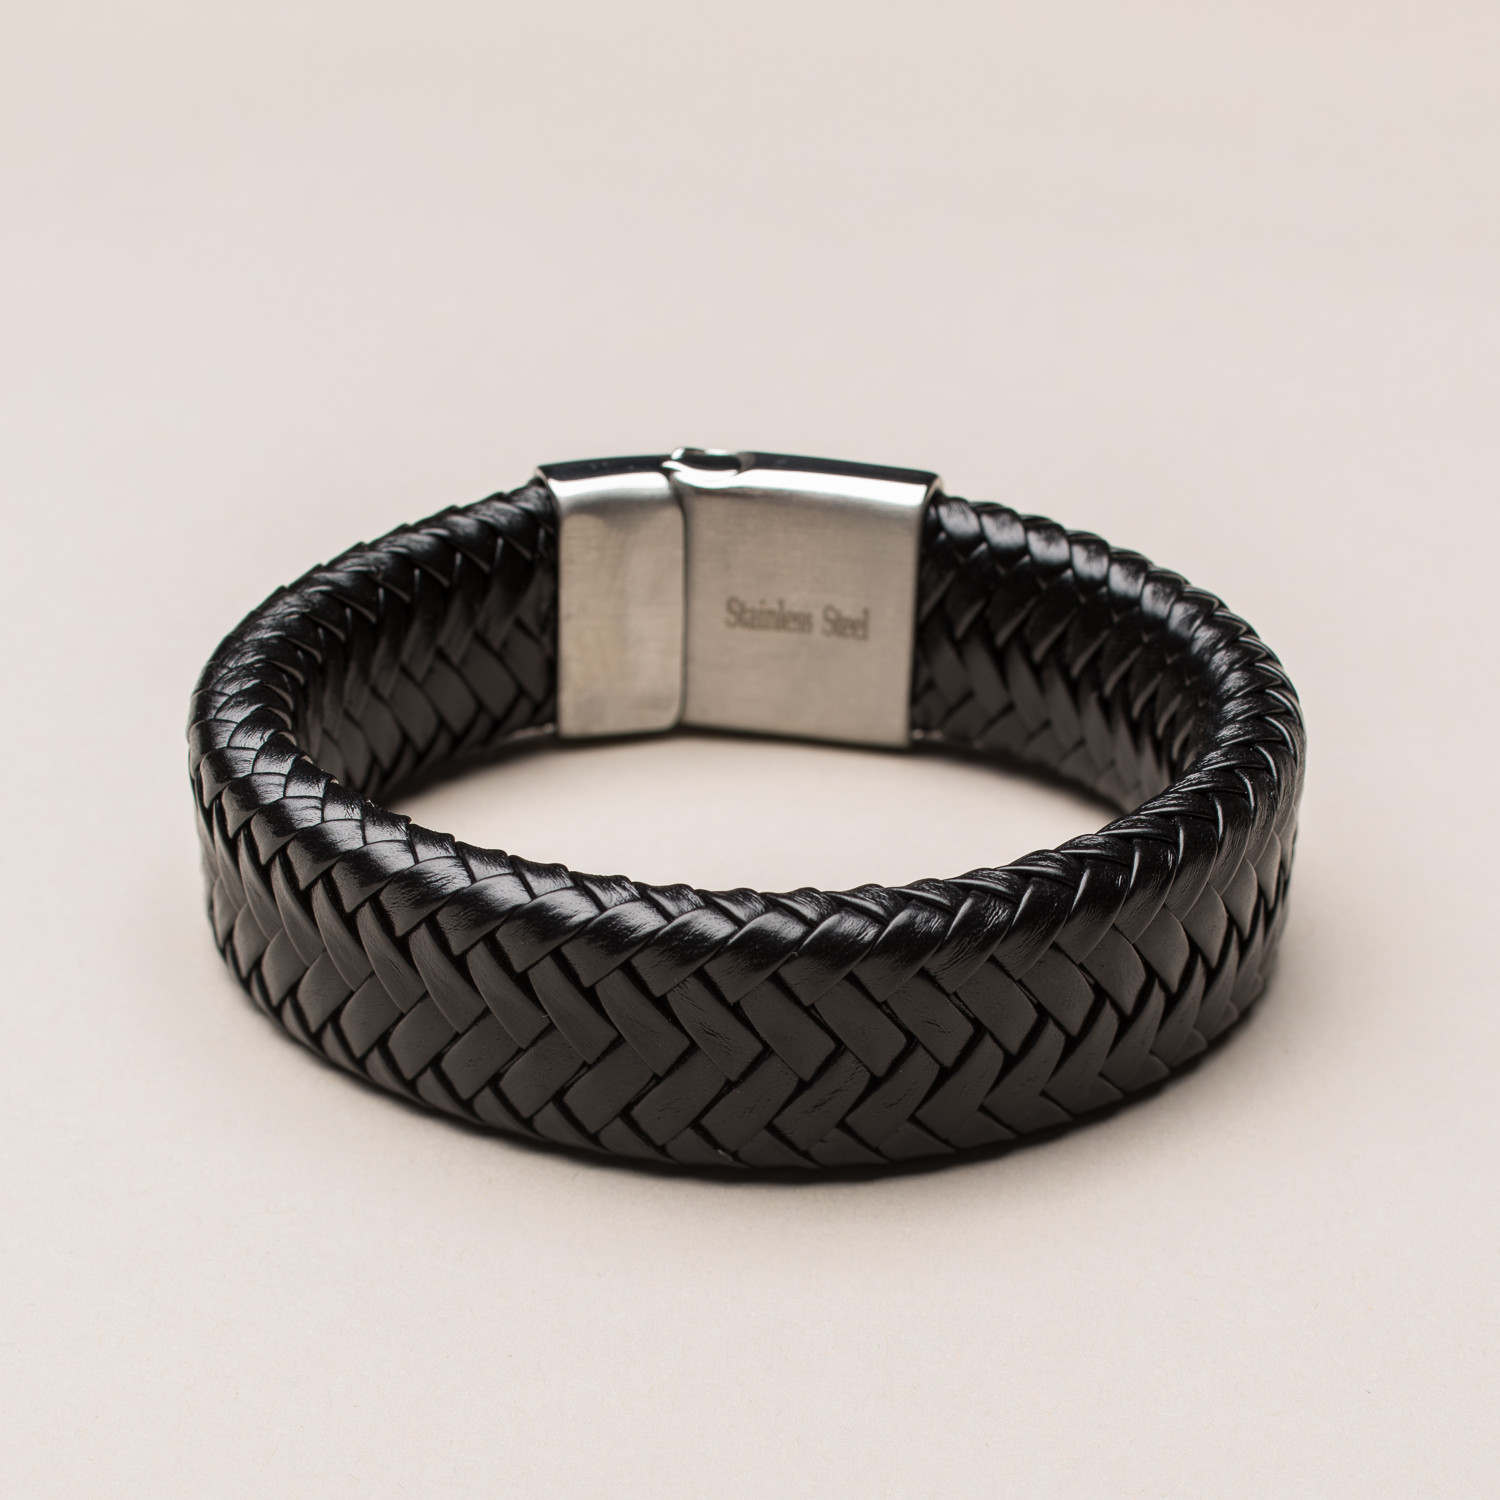 Fancy Genuine Thick Braided Leather Buckle Bracelet Black